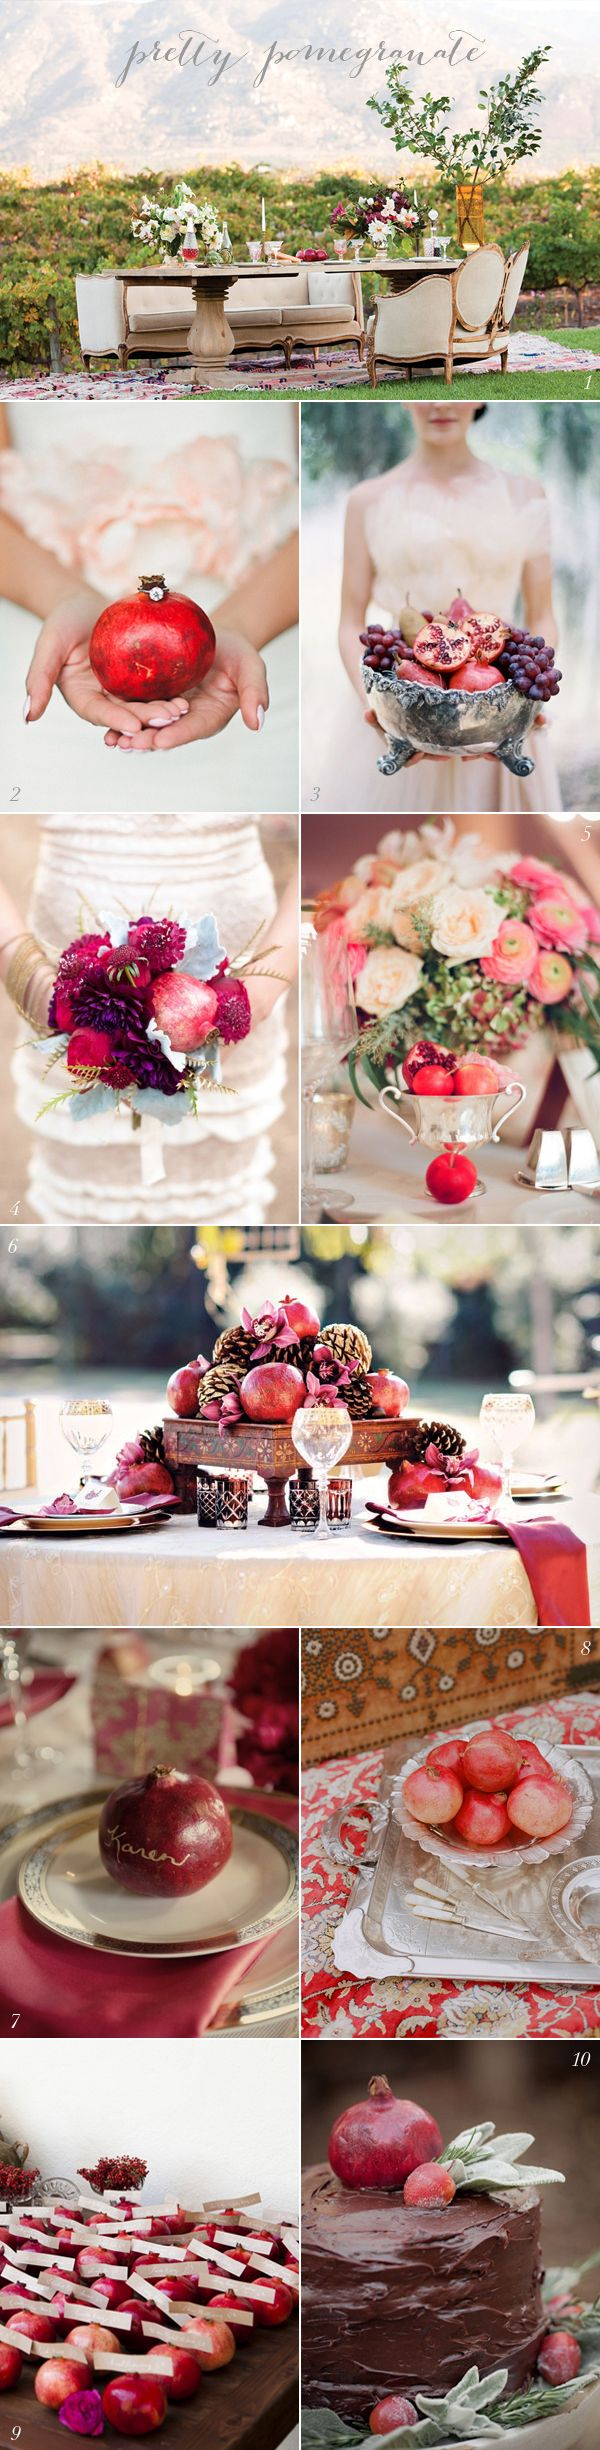 Pomegranate Wedding Ideas | via elizabethannedesigns.com